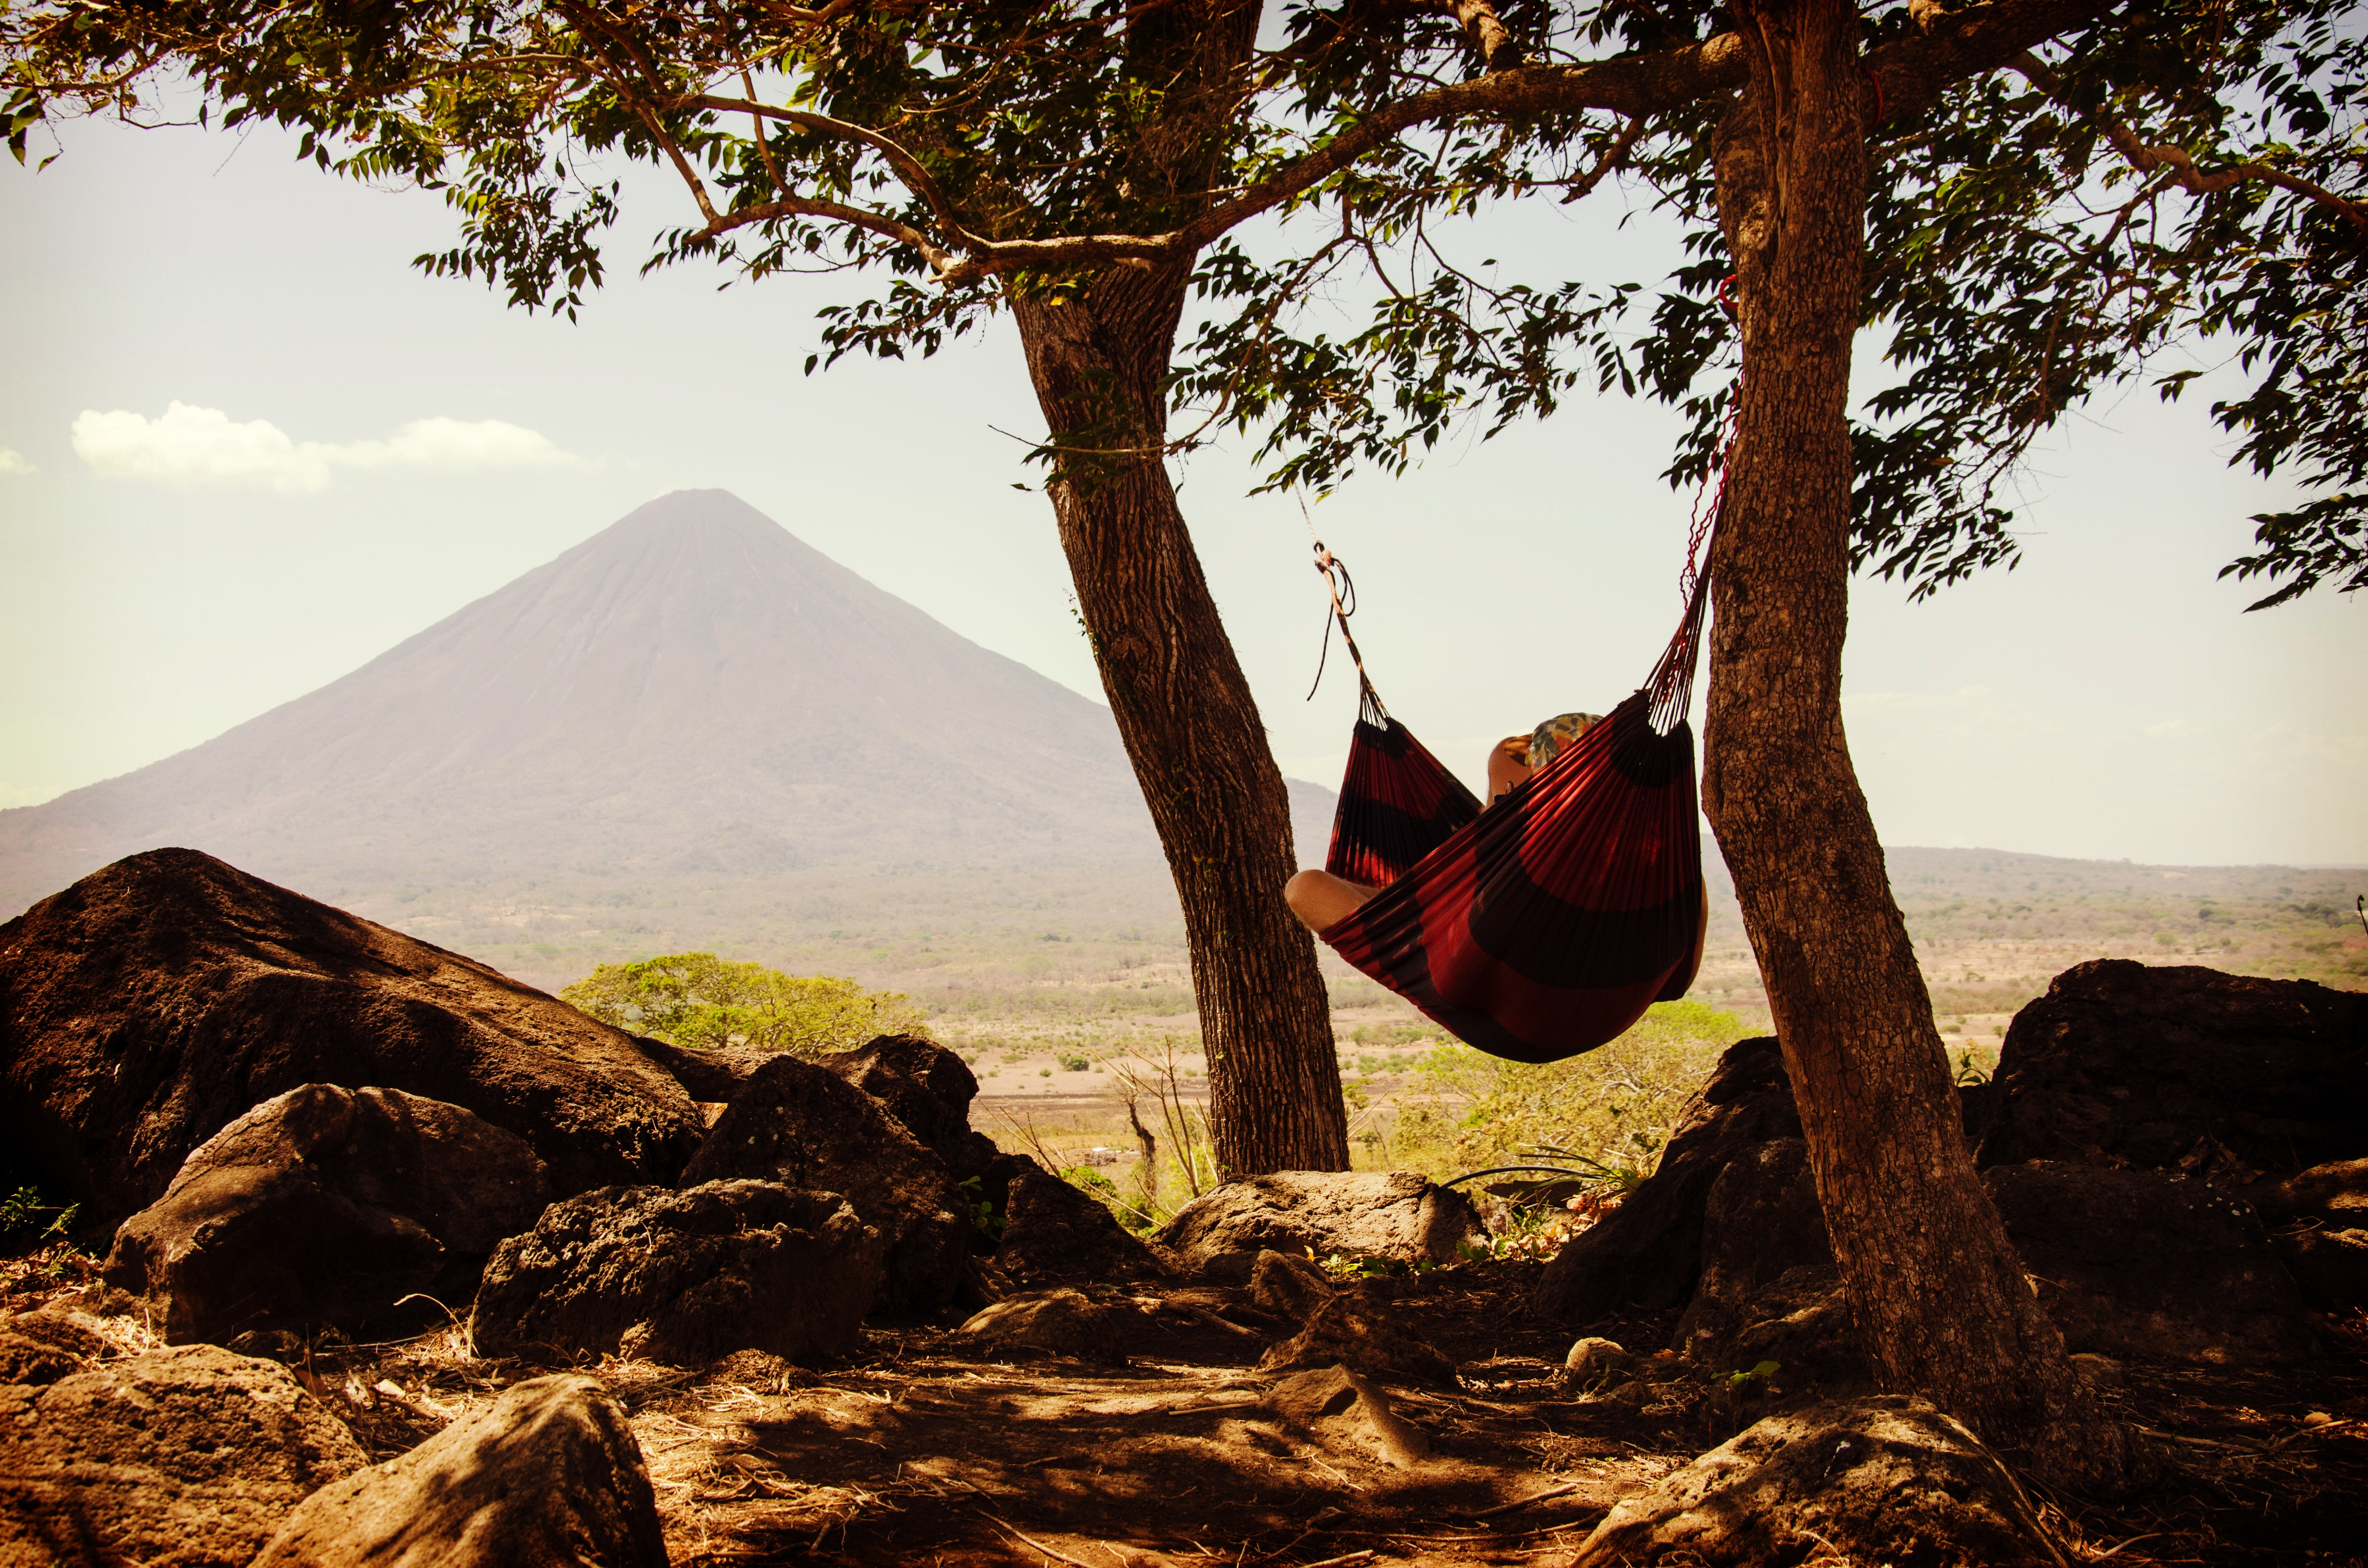 A person relaxing in a hammock